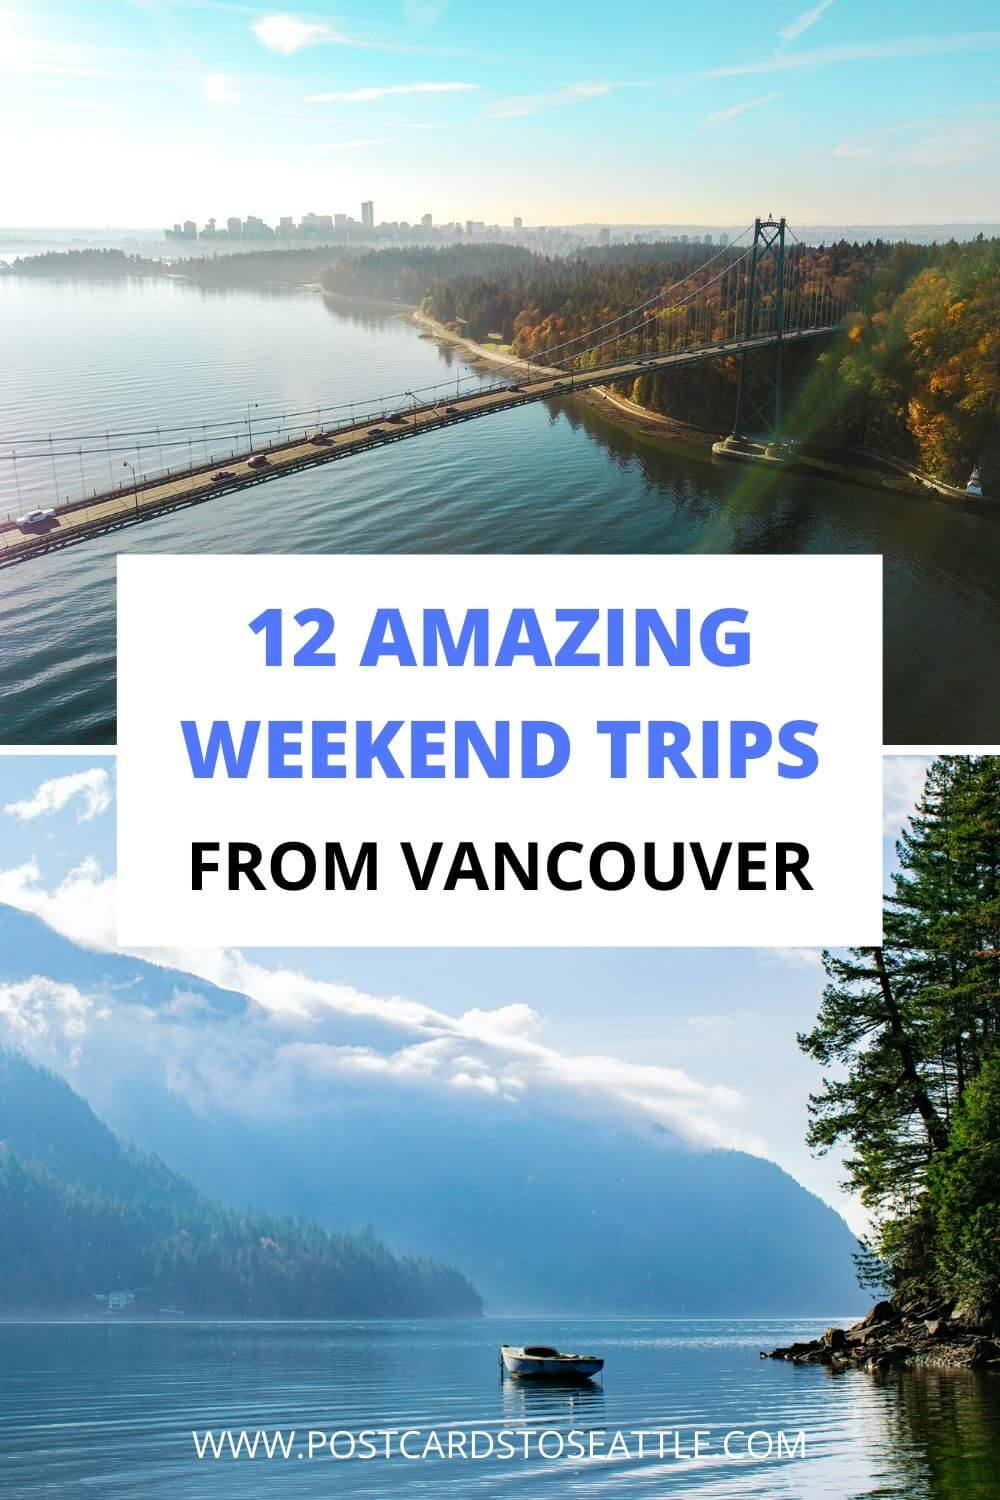 12 Amazing Weekend Getaways From Vancouver, BC to Book